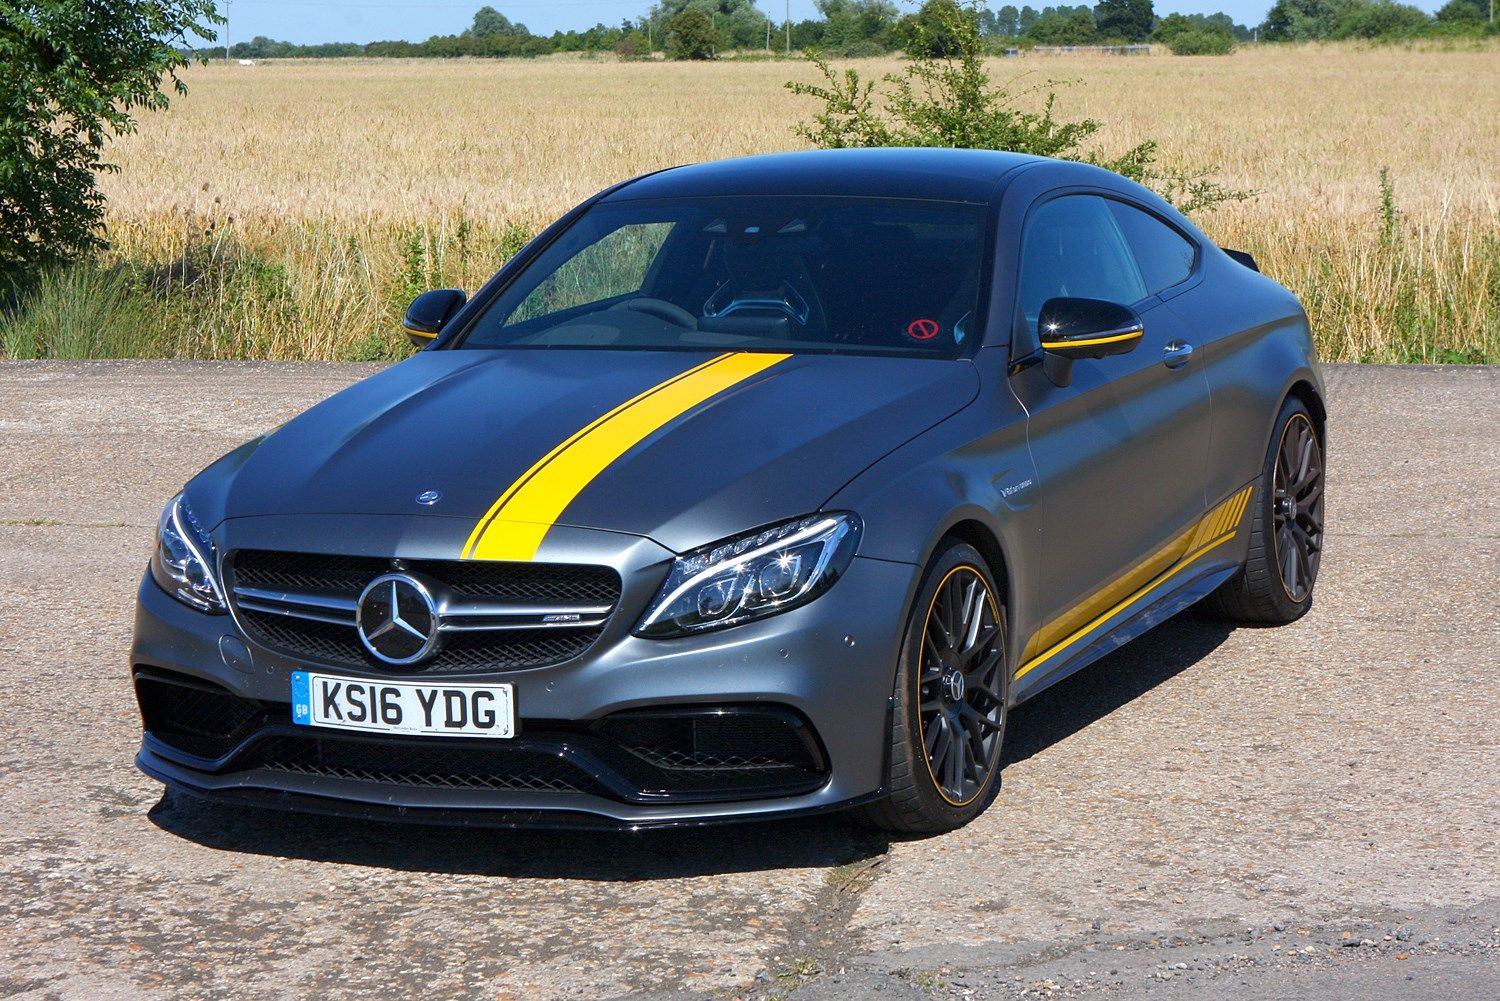 2016 Mercedes AMG C63 S Coupe Edition 1 -- Confused about what to buy? Call 1-800-CAR-SHOW for a Product Specialists who will help you for FREE. 300 models to choose from: Coupes, Sedans, Station Wagons, Minivans, Crossovers, SUVs, Pickup Trucks